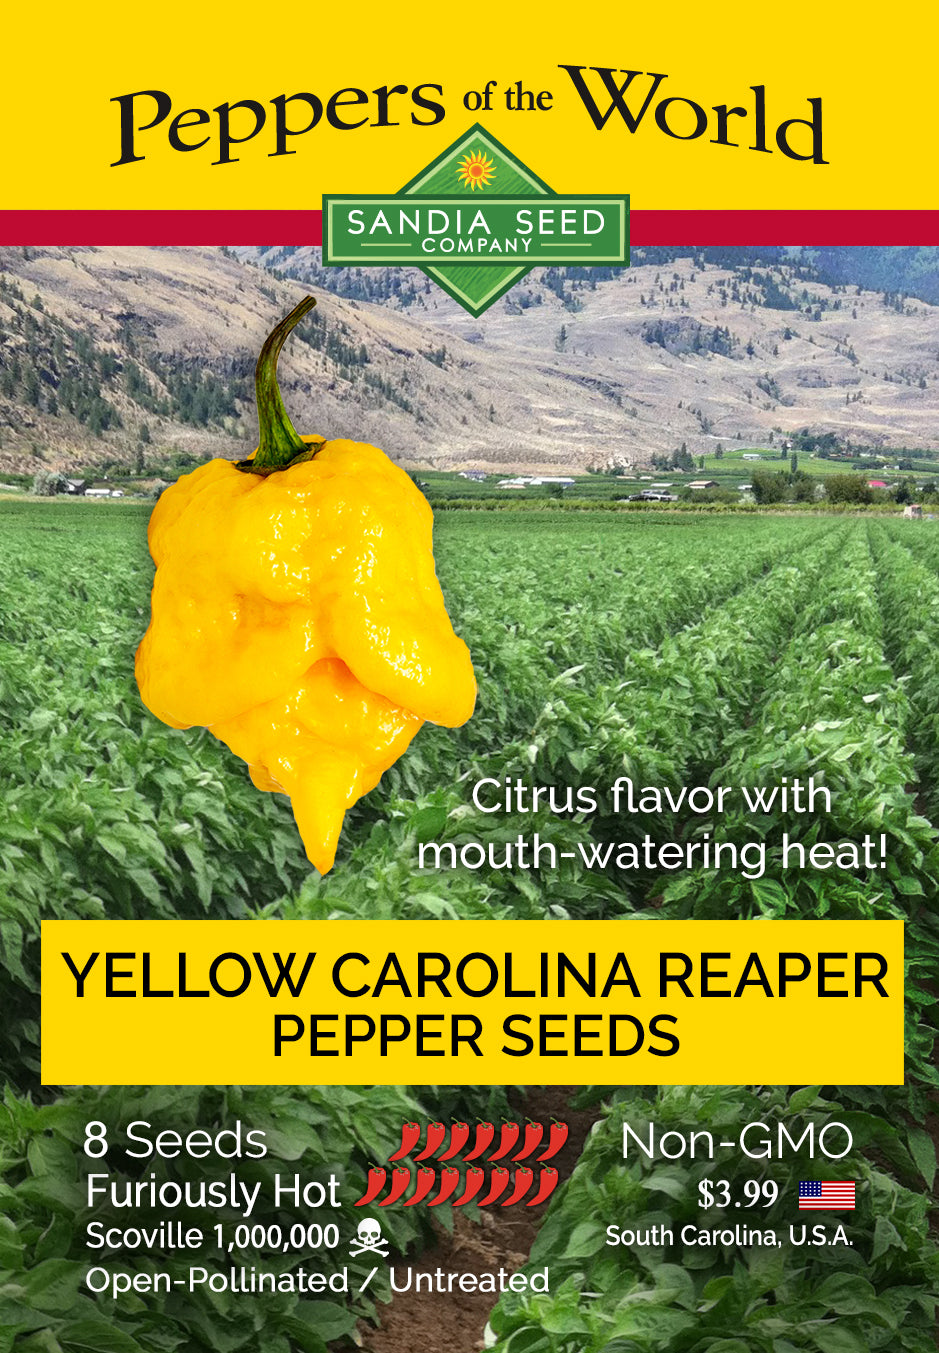 Fastest Growing Hot Peppers: Yellow Carolina Reaper